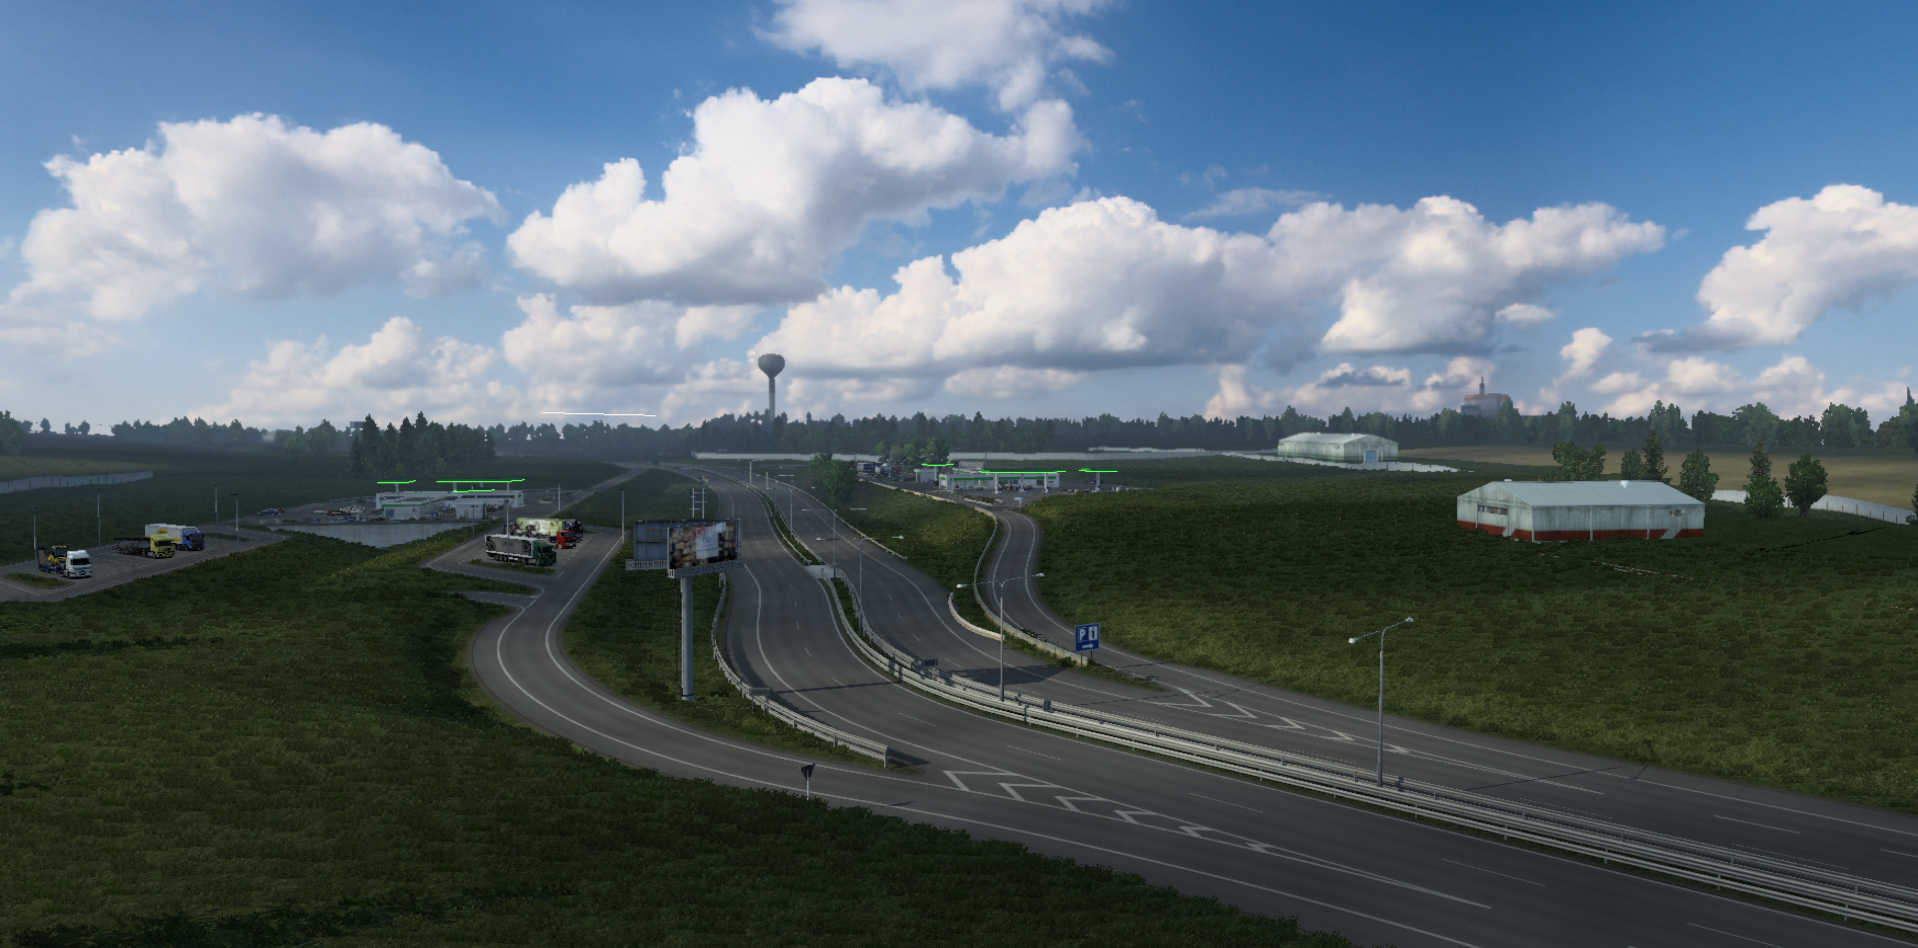 ets2_20210606_172640_00.png